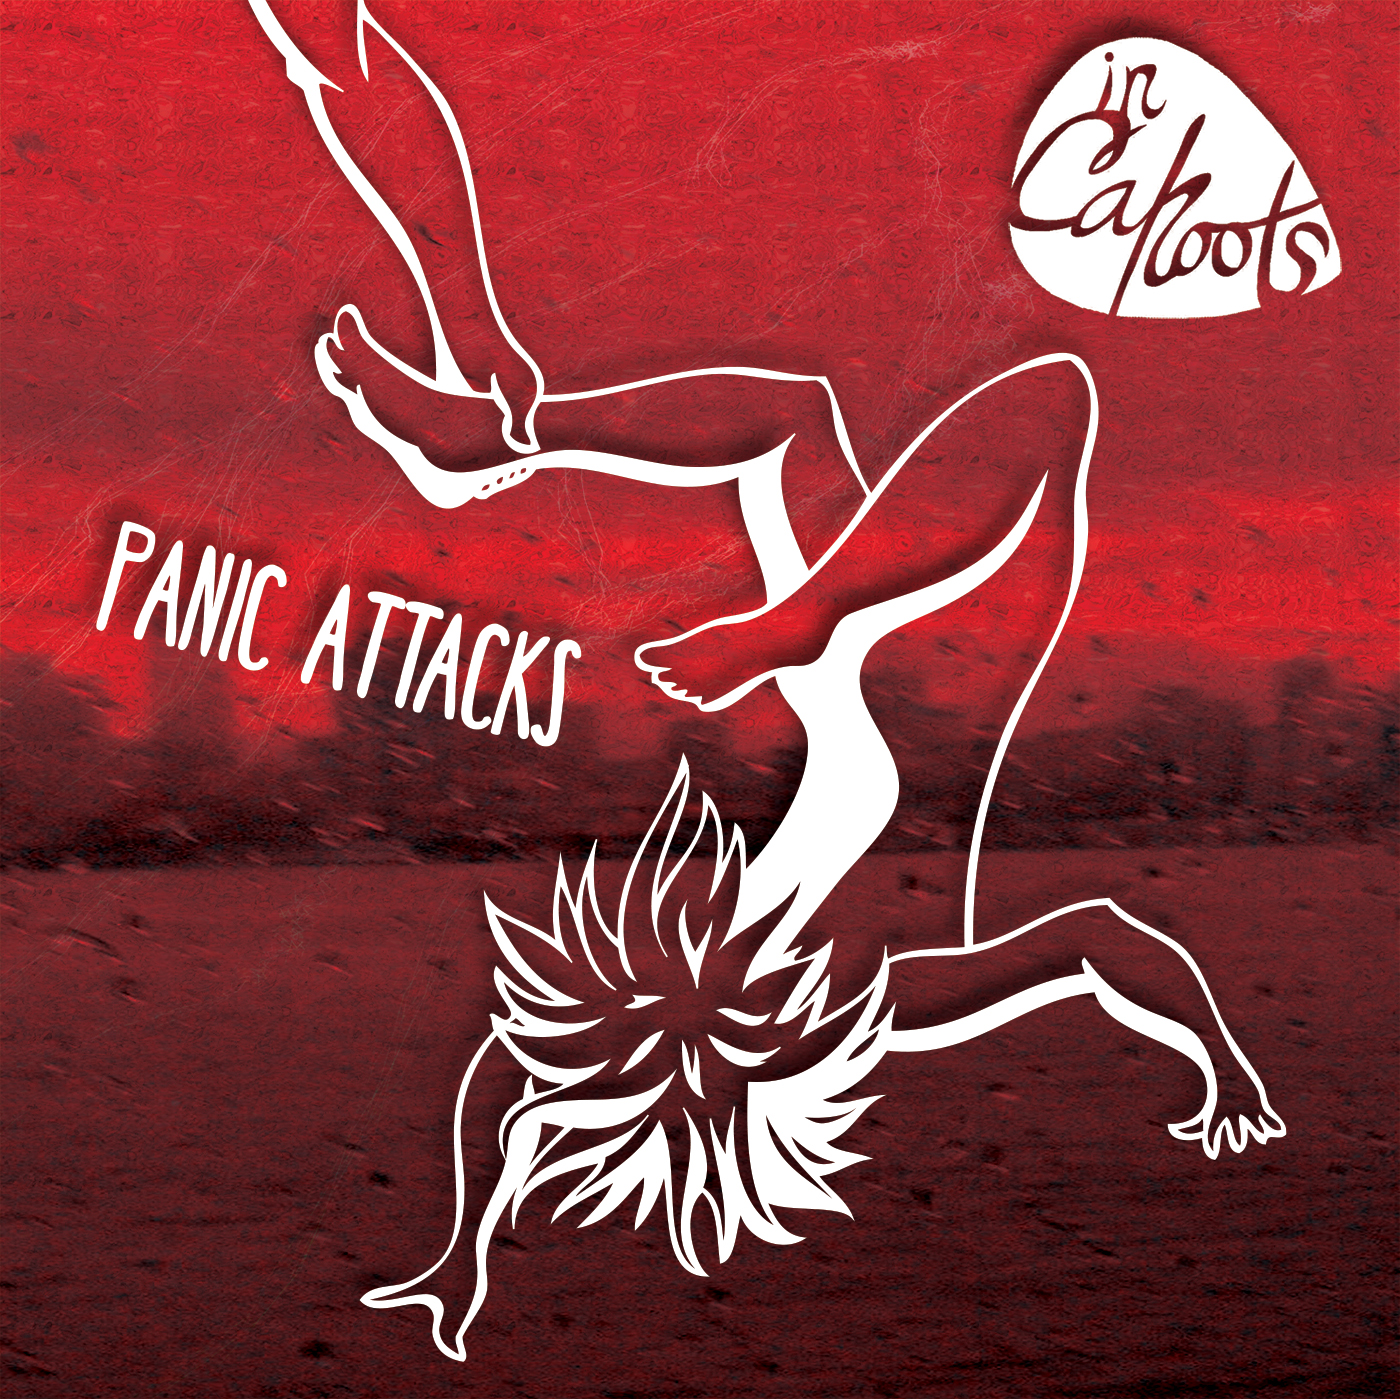 panic-attacks-in-cahoots-cdbaby